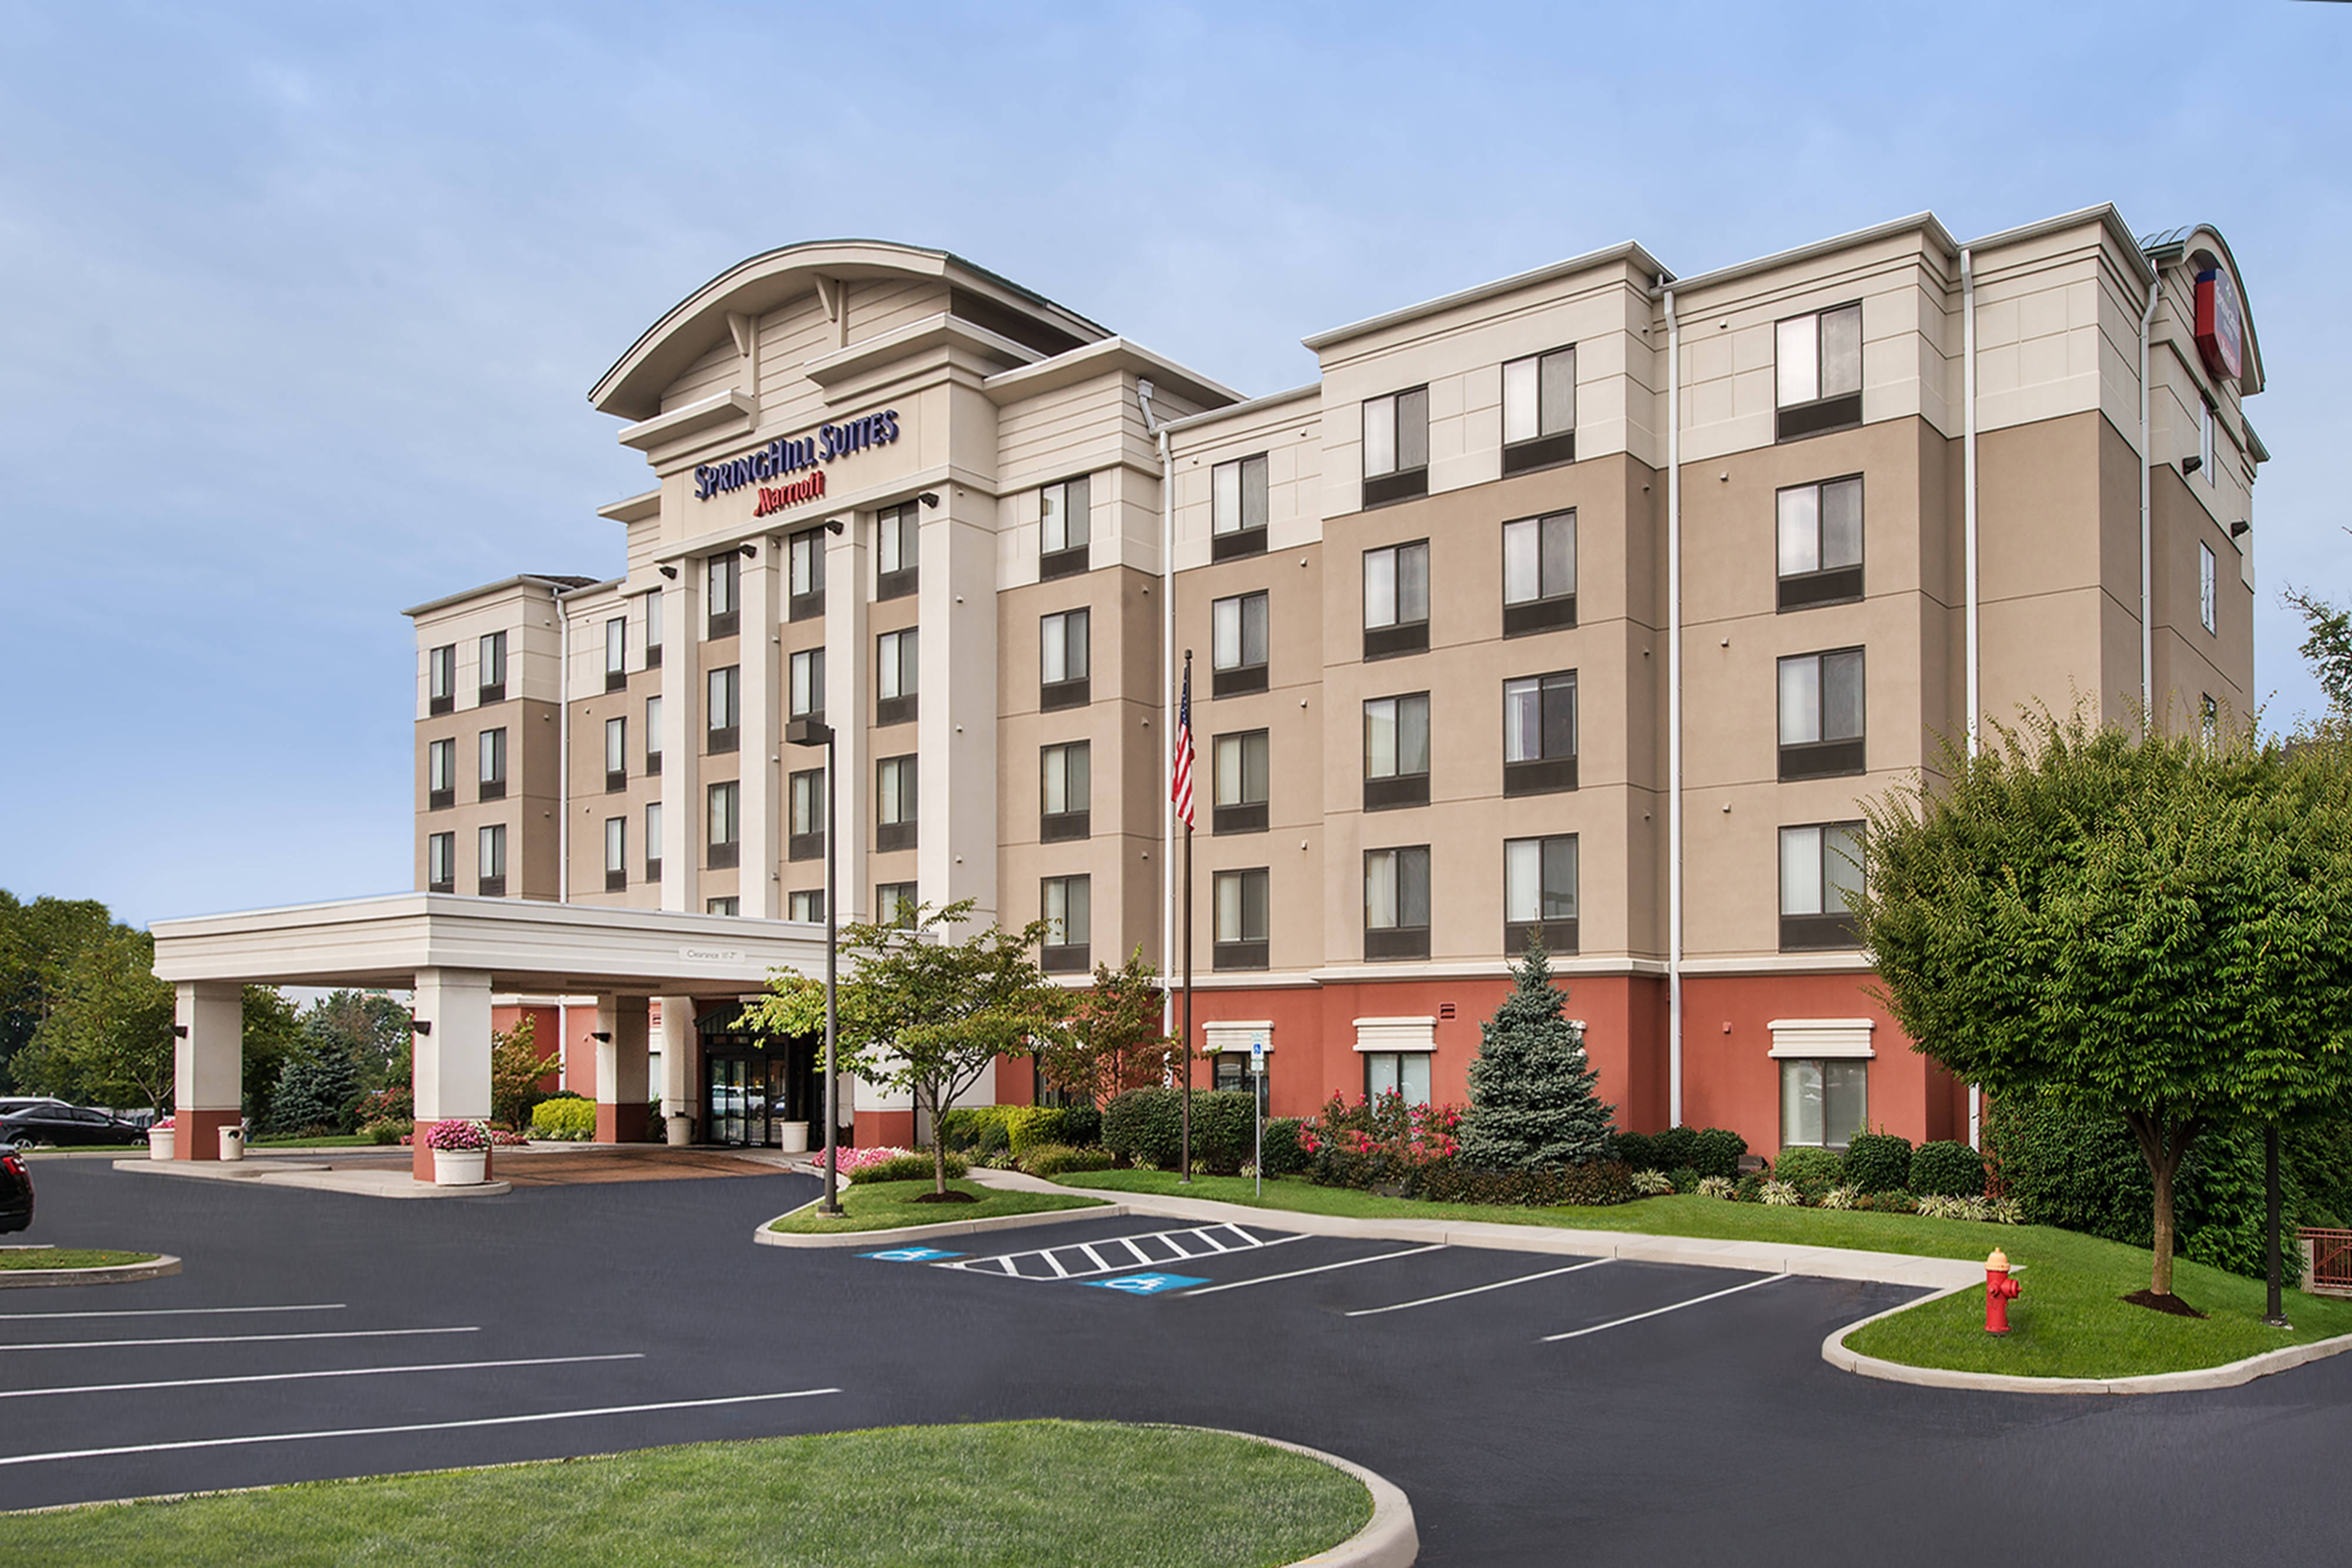 SpringHill Suites Hagerstown Hotel Exterior